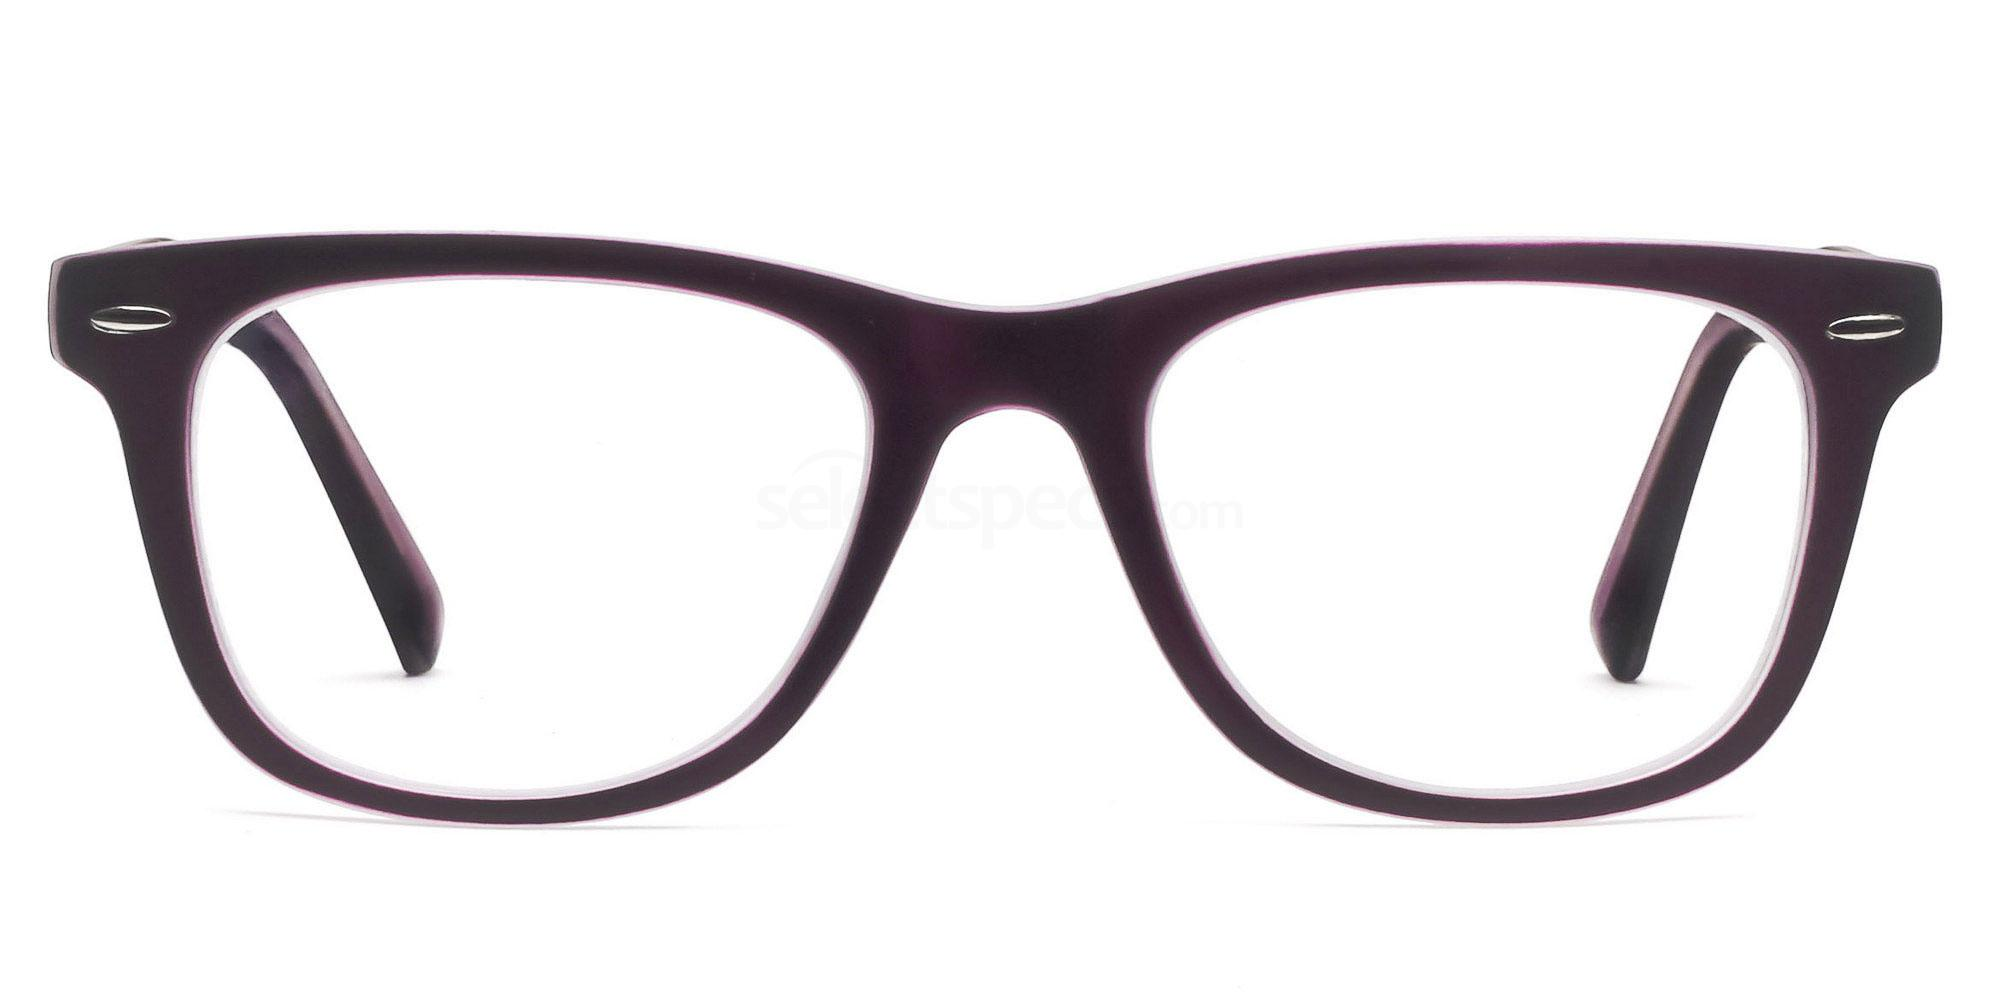 C12 8121 - Purple on Transparent Glasses, Savannah